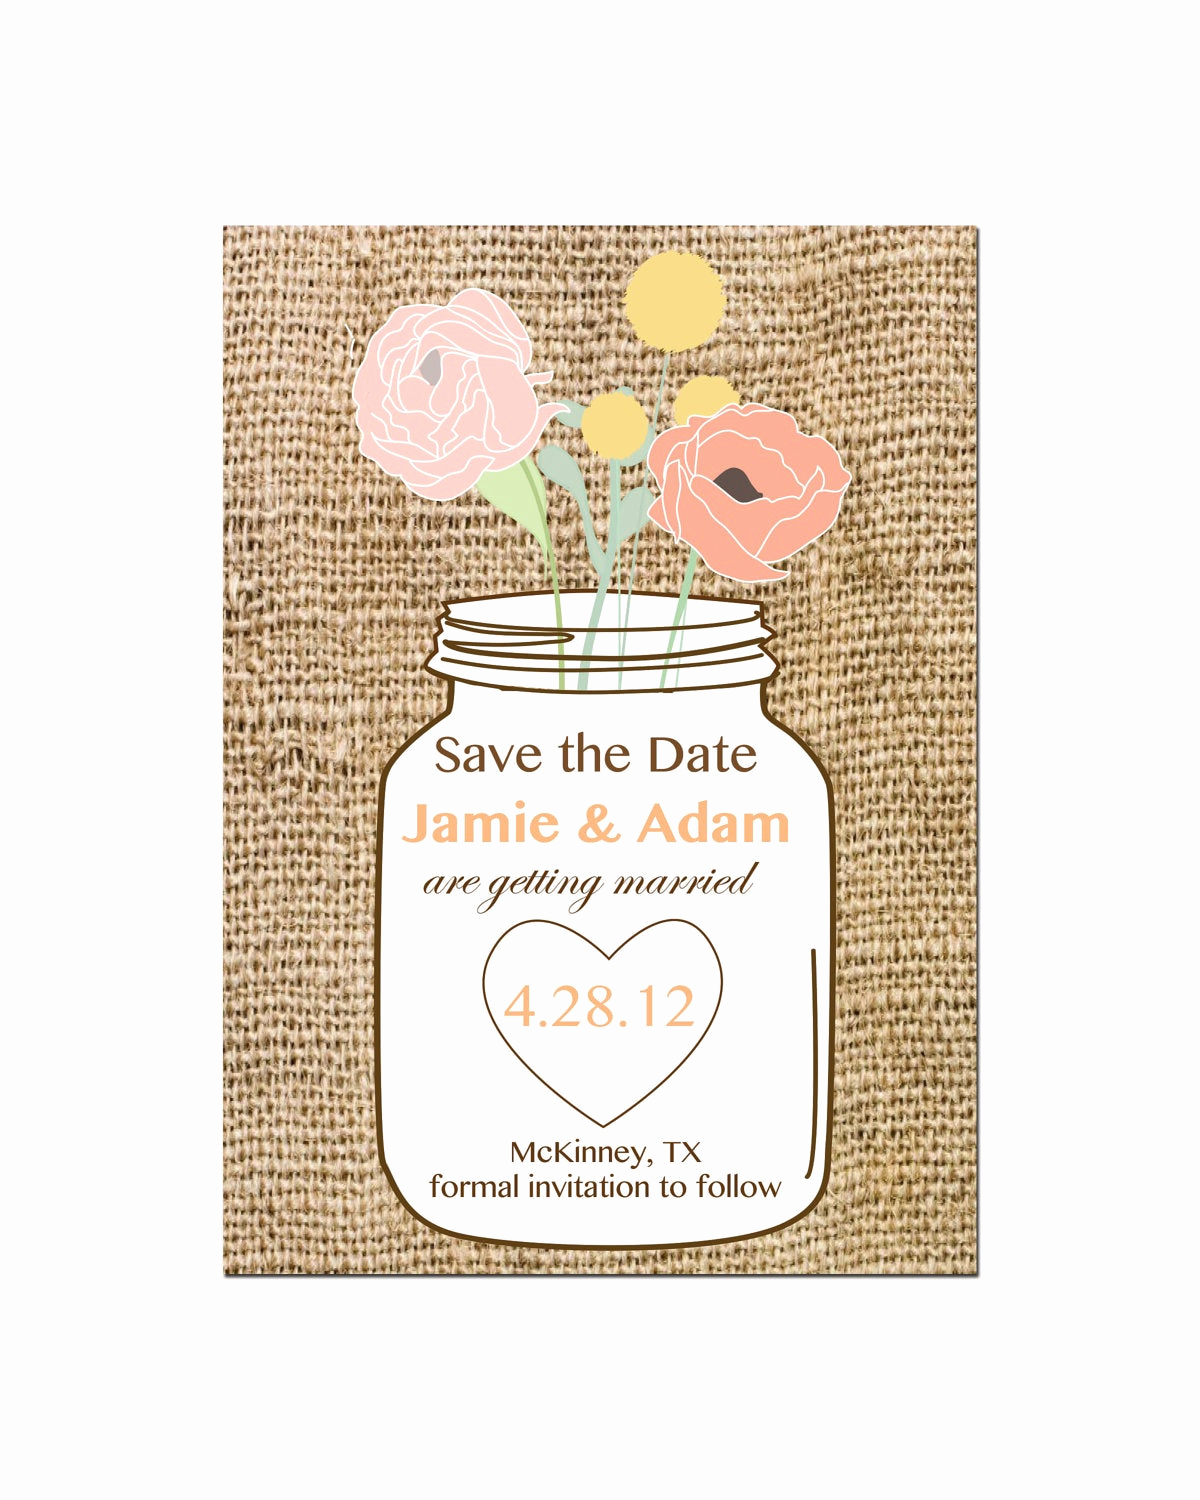 Mason Jar Invitation Template Inspirational Mason Jar Save the Date Wedding Invitation by